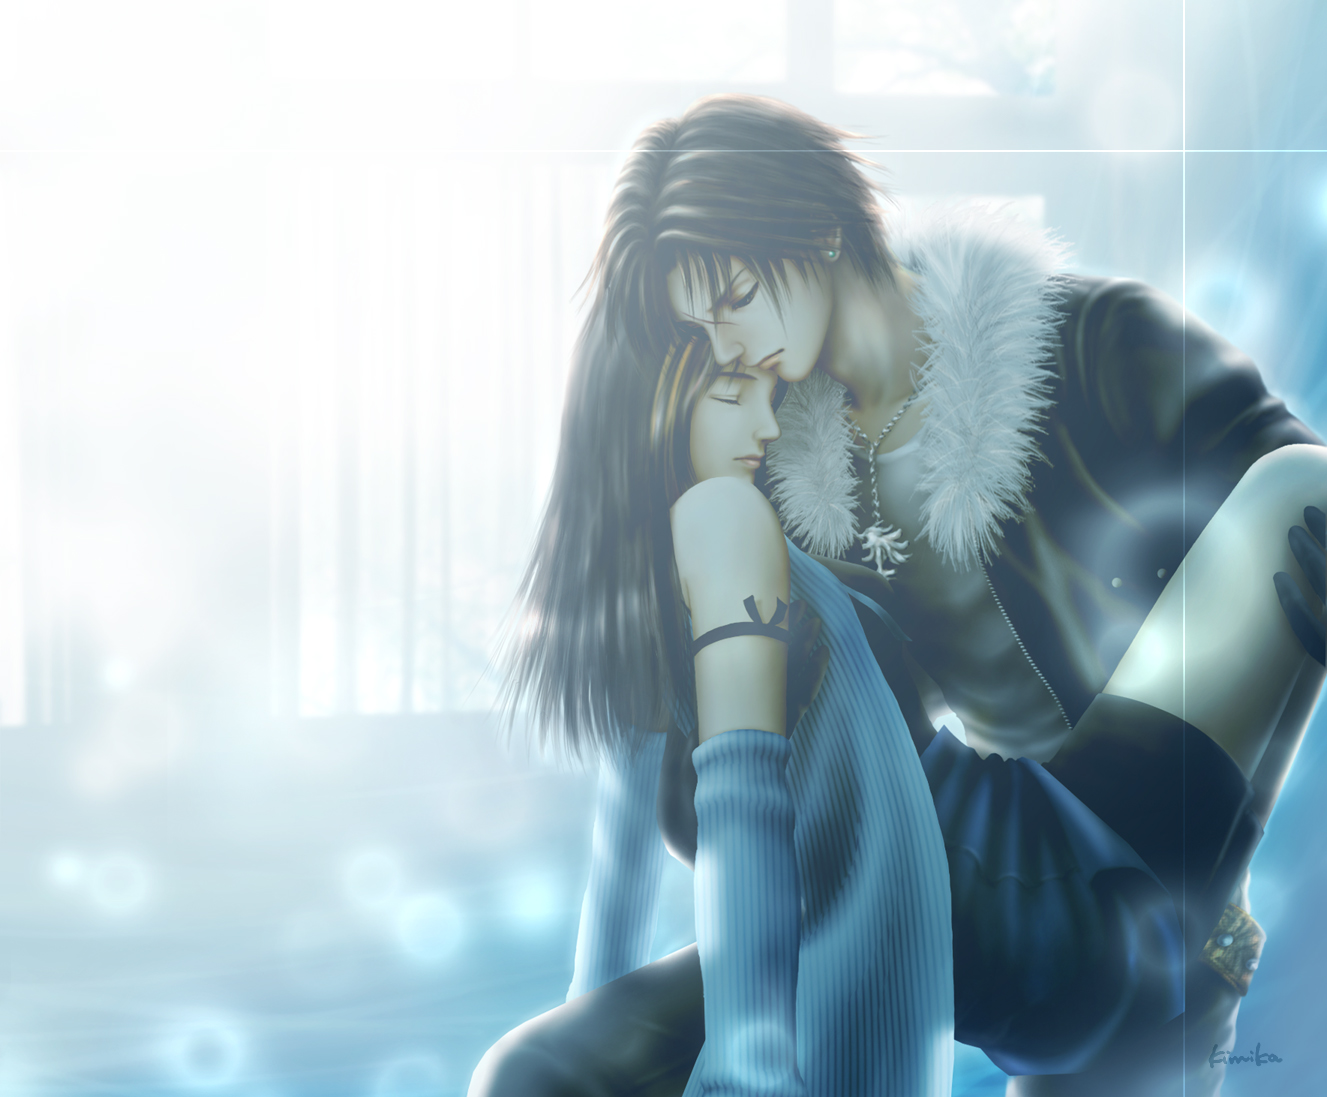 Final Fantasy Viii Ff8 Pics Pictures to pin on Pinterest Final Fantasy Rinoa And Squall